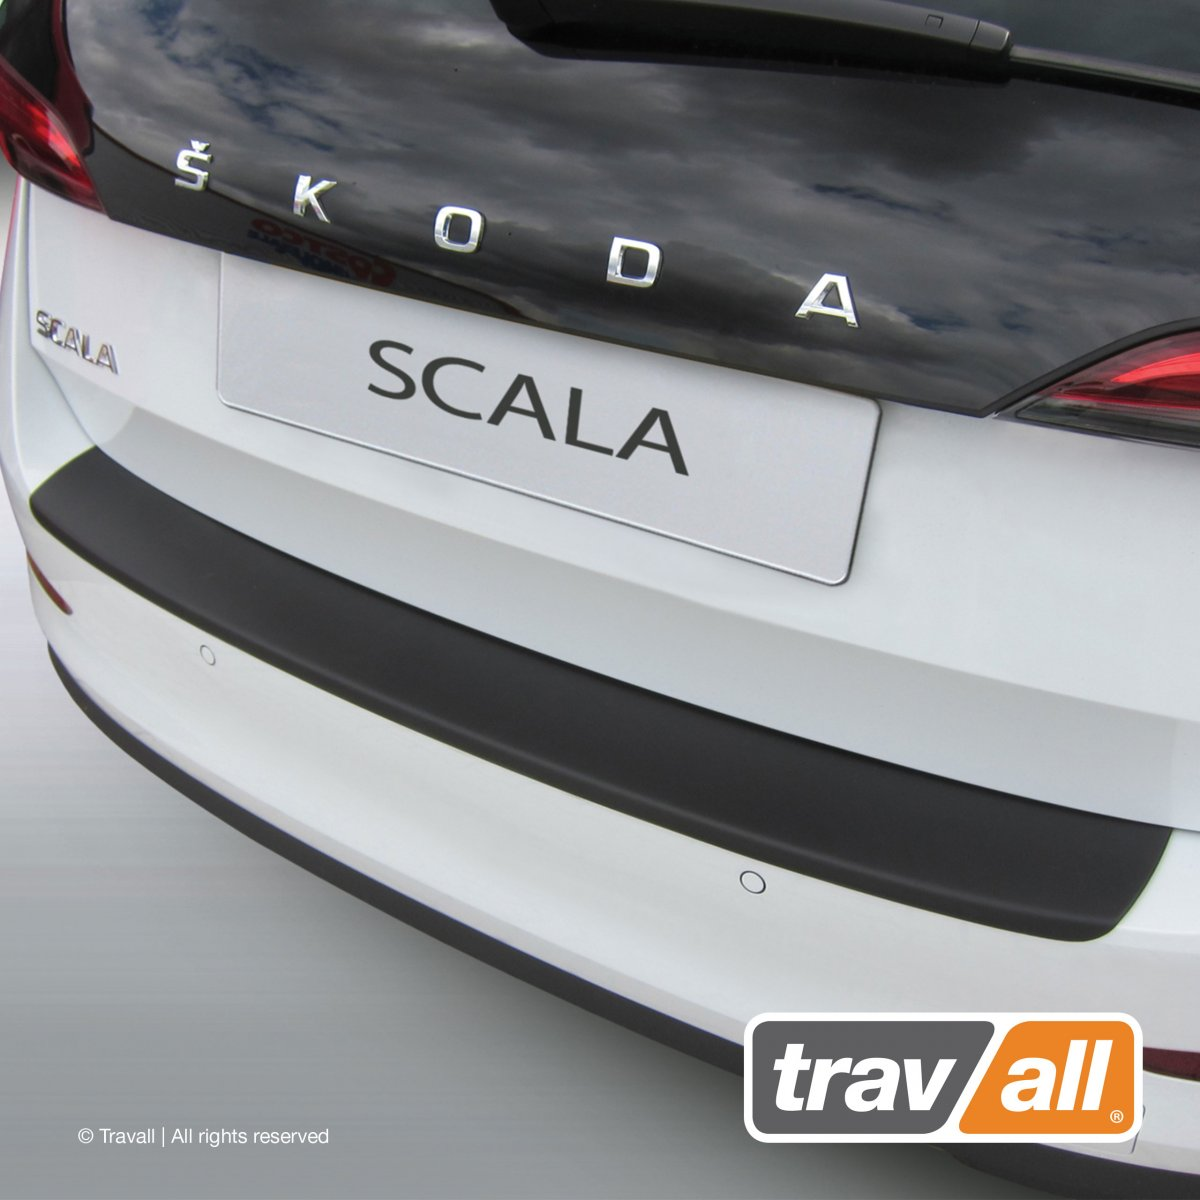 Travall® PROTECTOR-Plastique lisse pour Skoda Scala (2018 >)